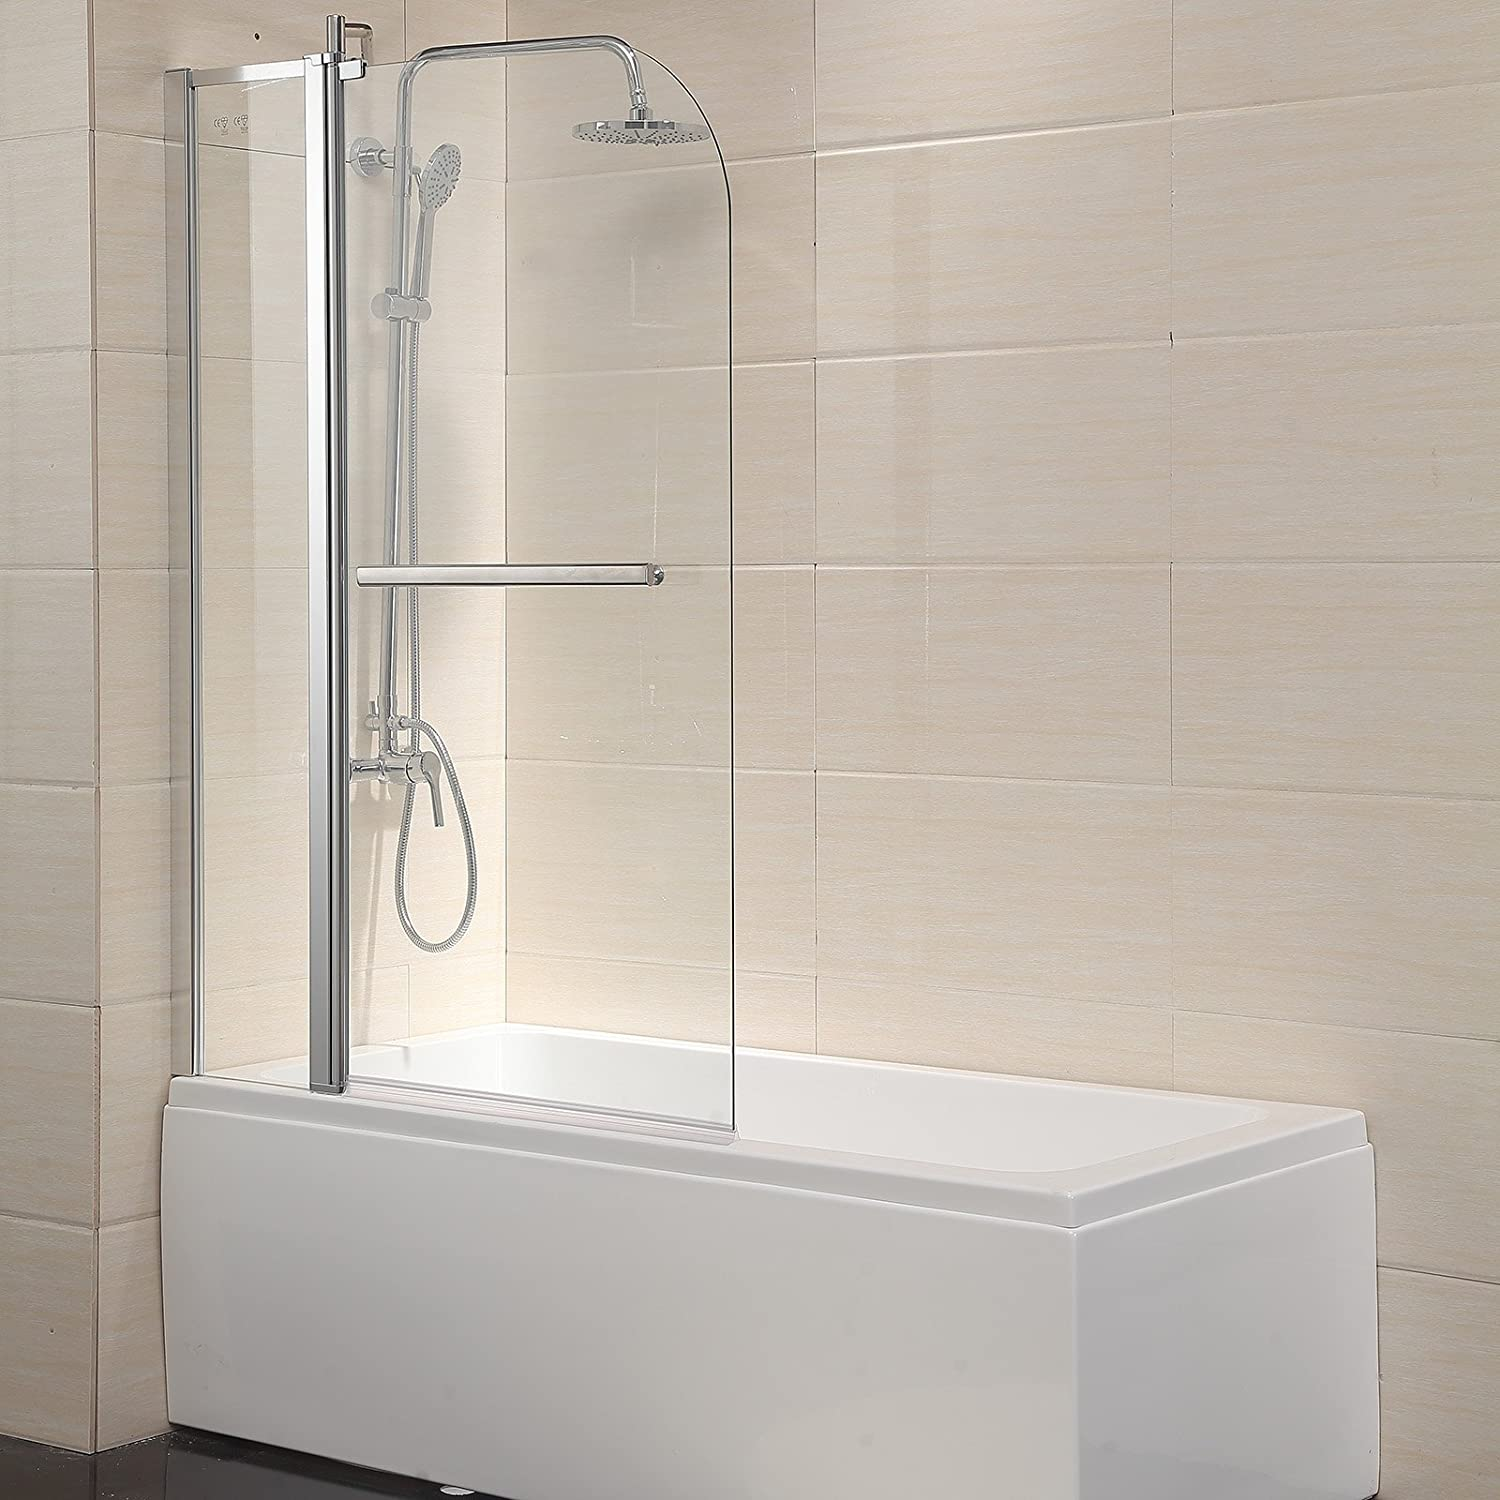 WaaGee Bath Tub Shower Door Framed 1 4 Clear Glass 55X39